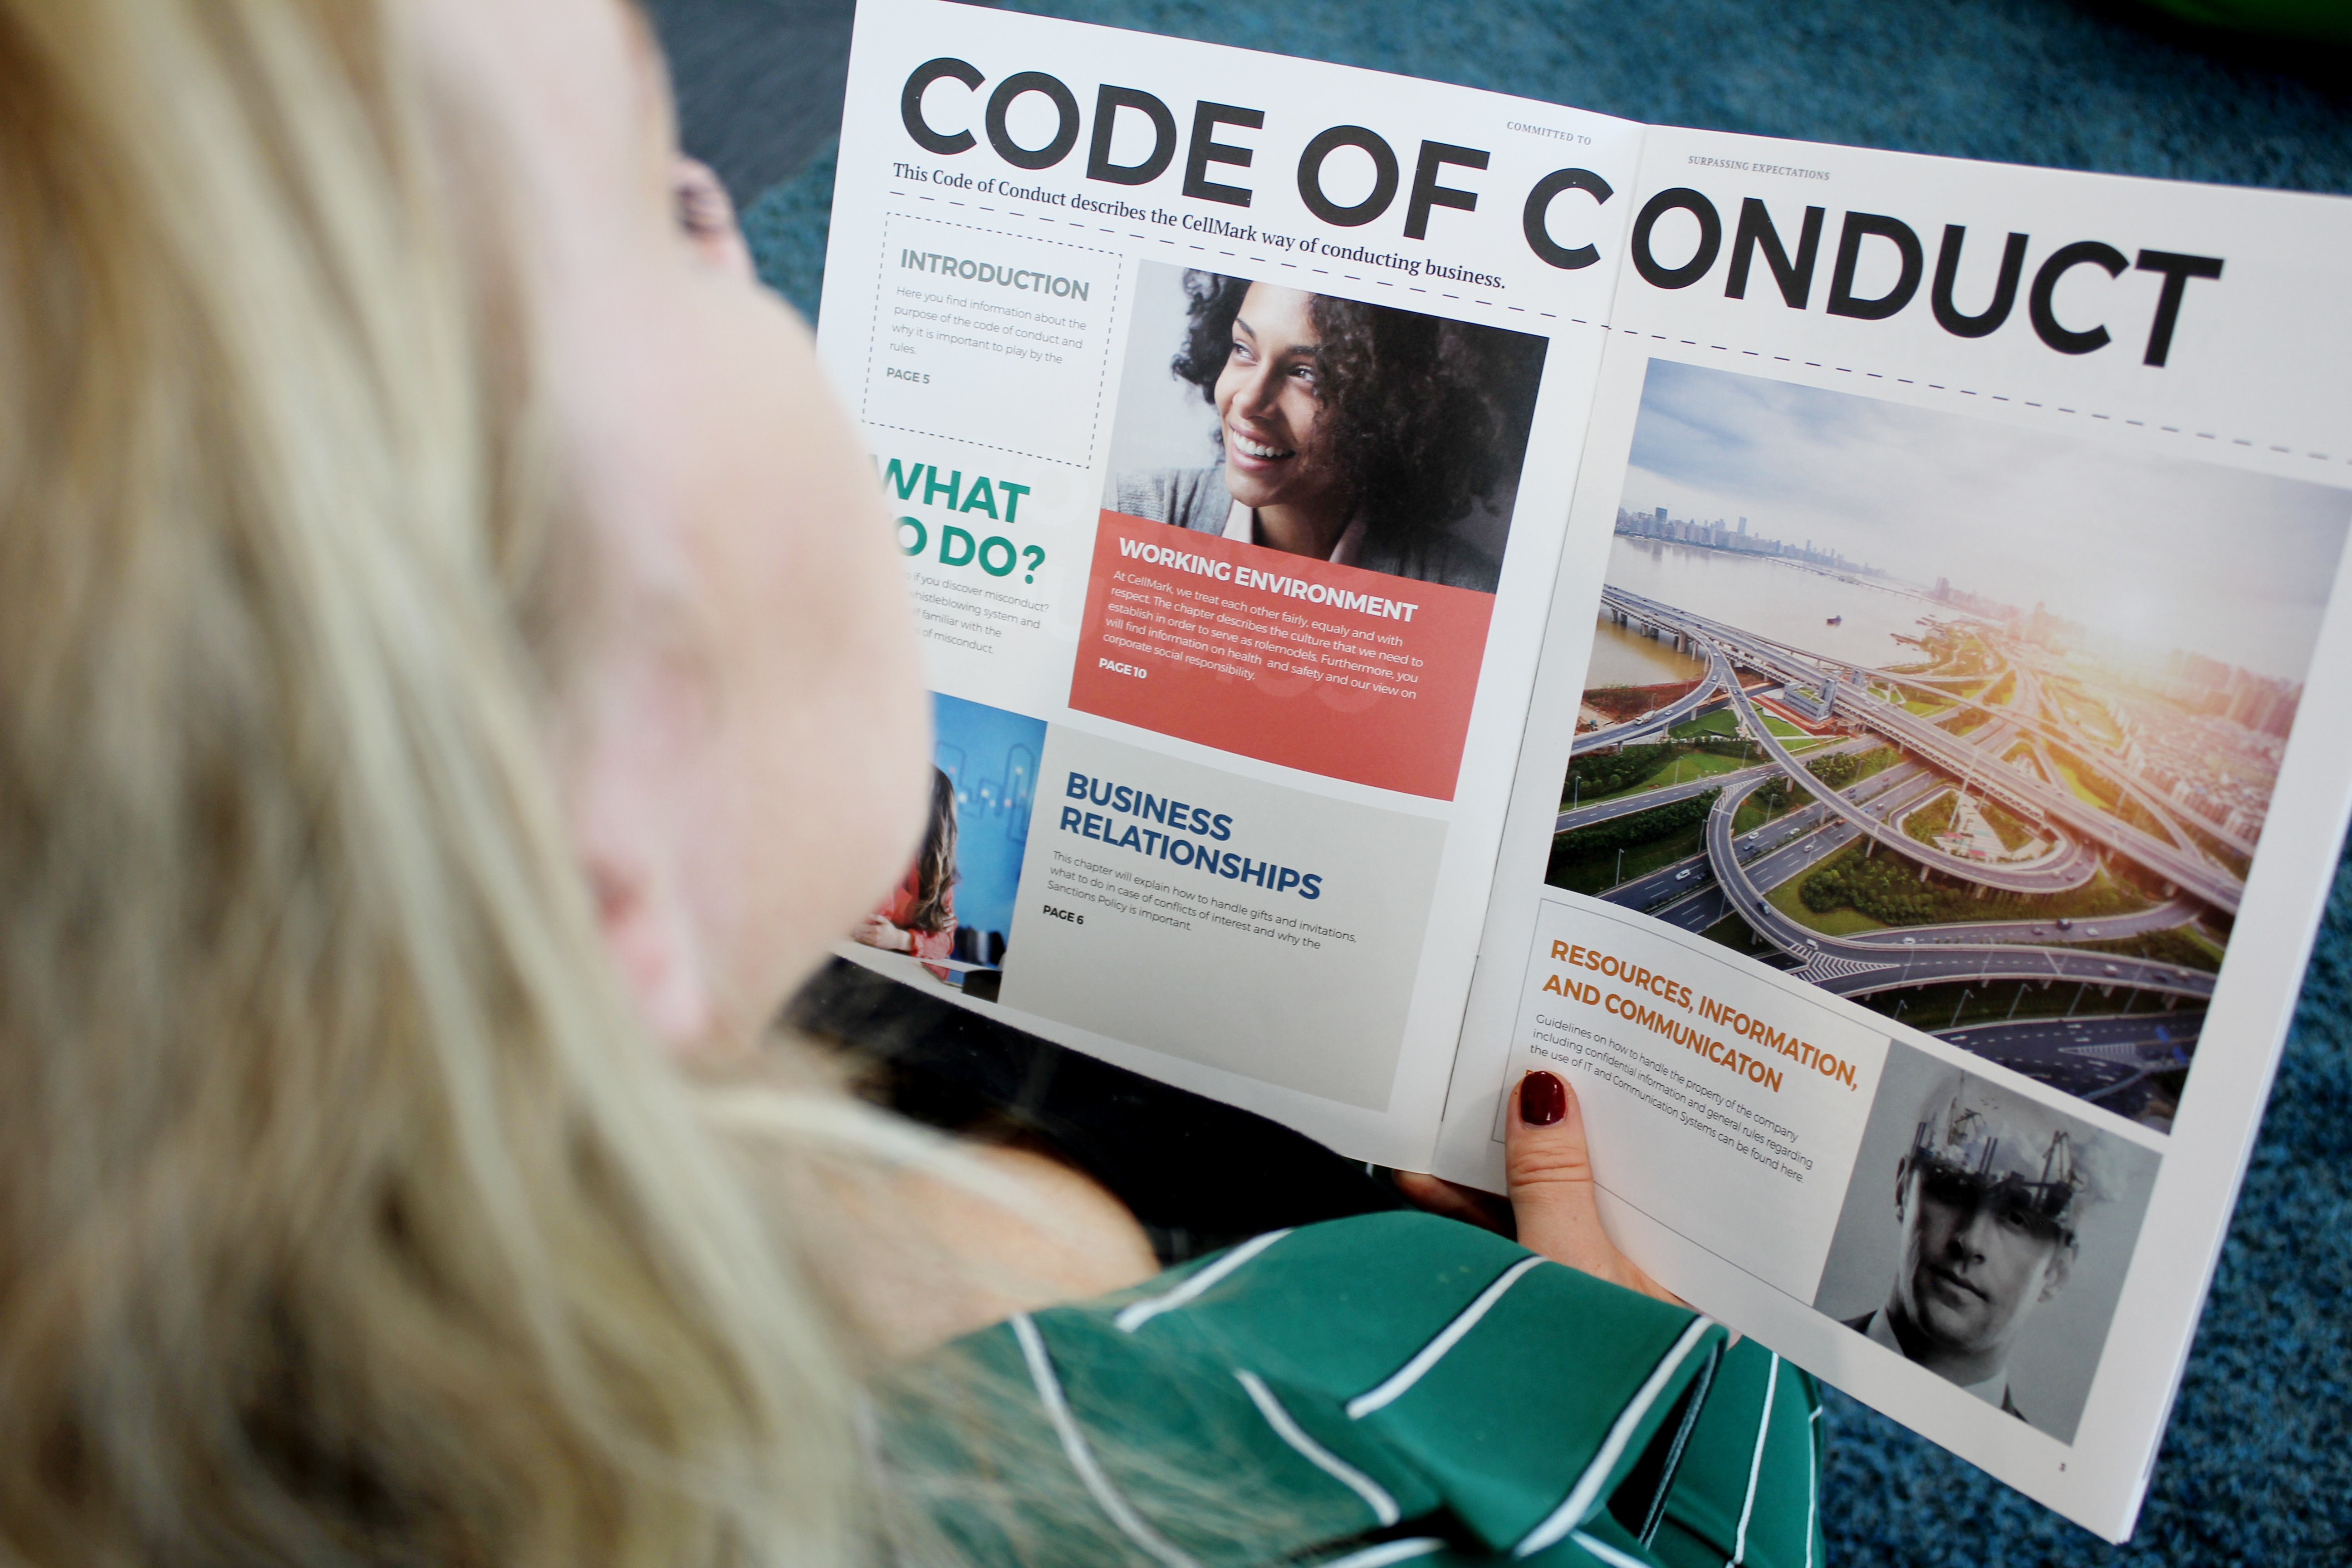 blond woman reading cellmark code of conduct